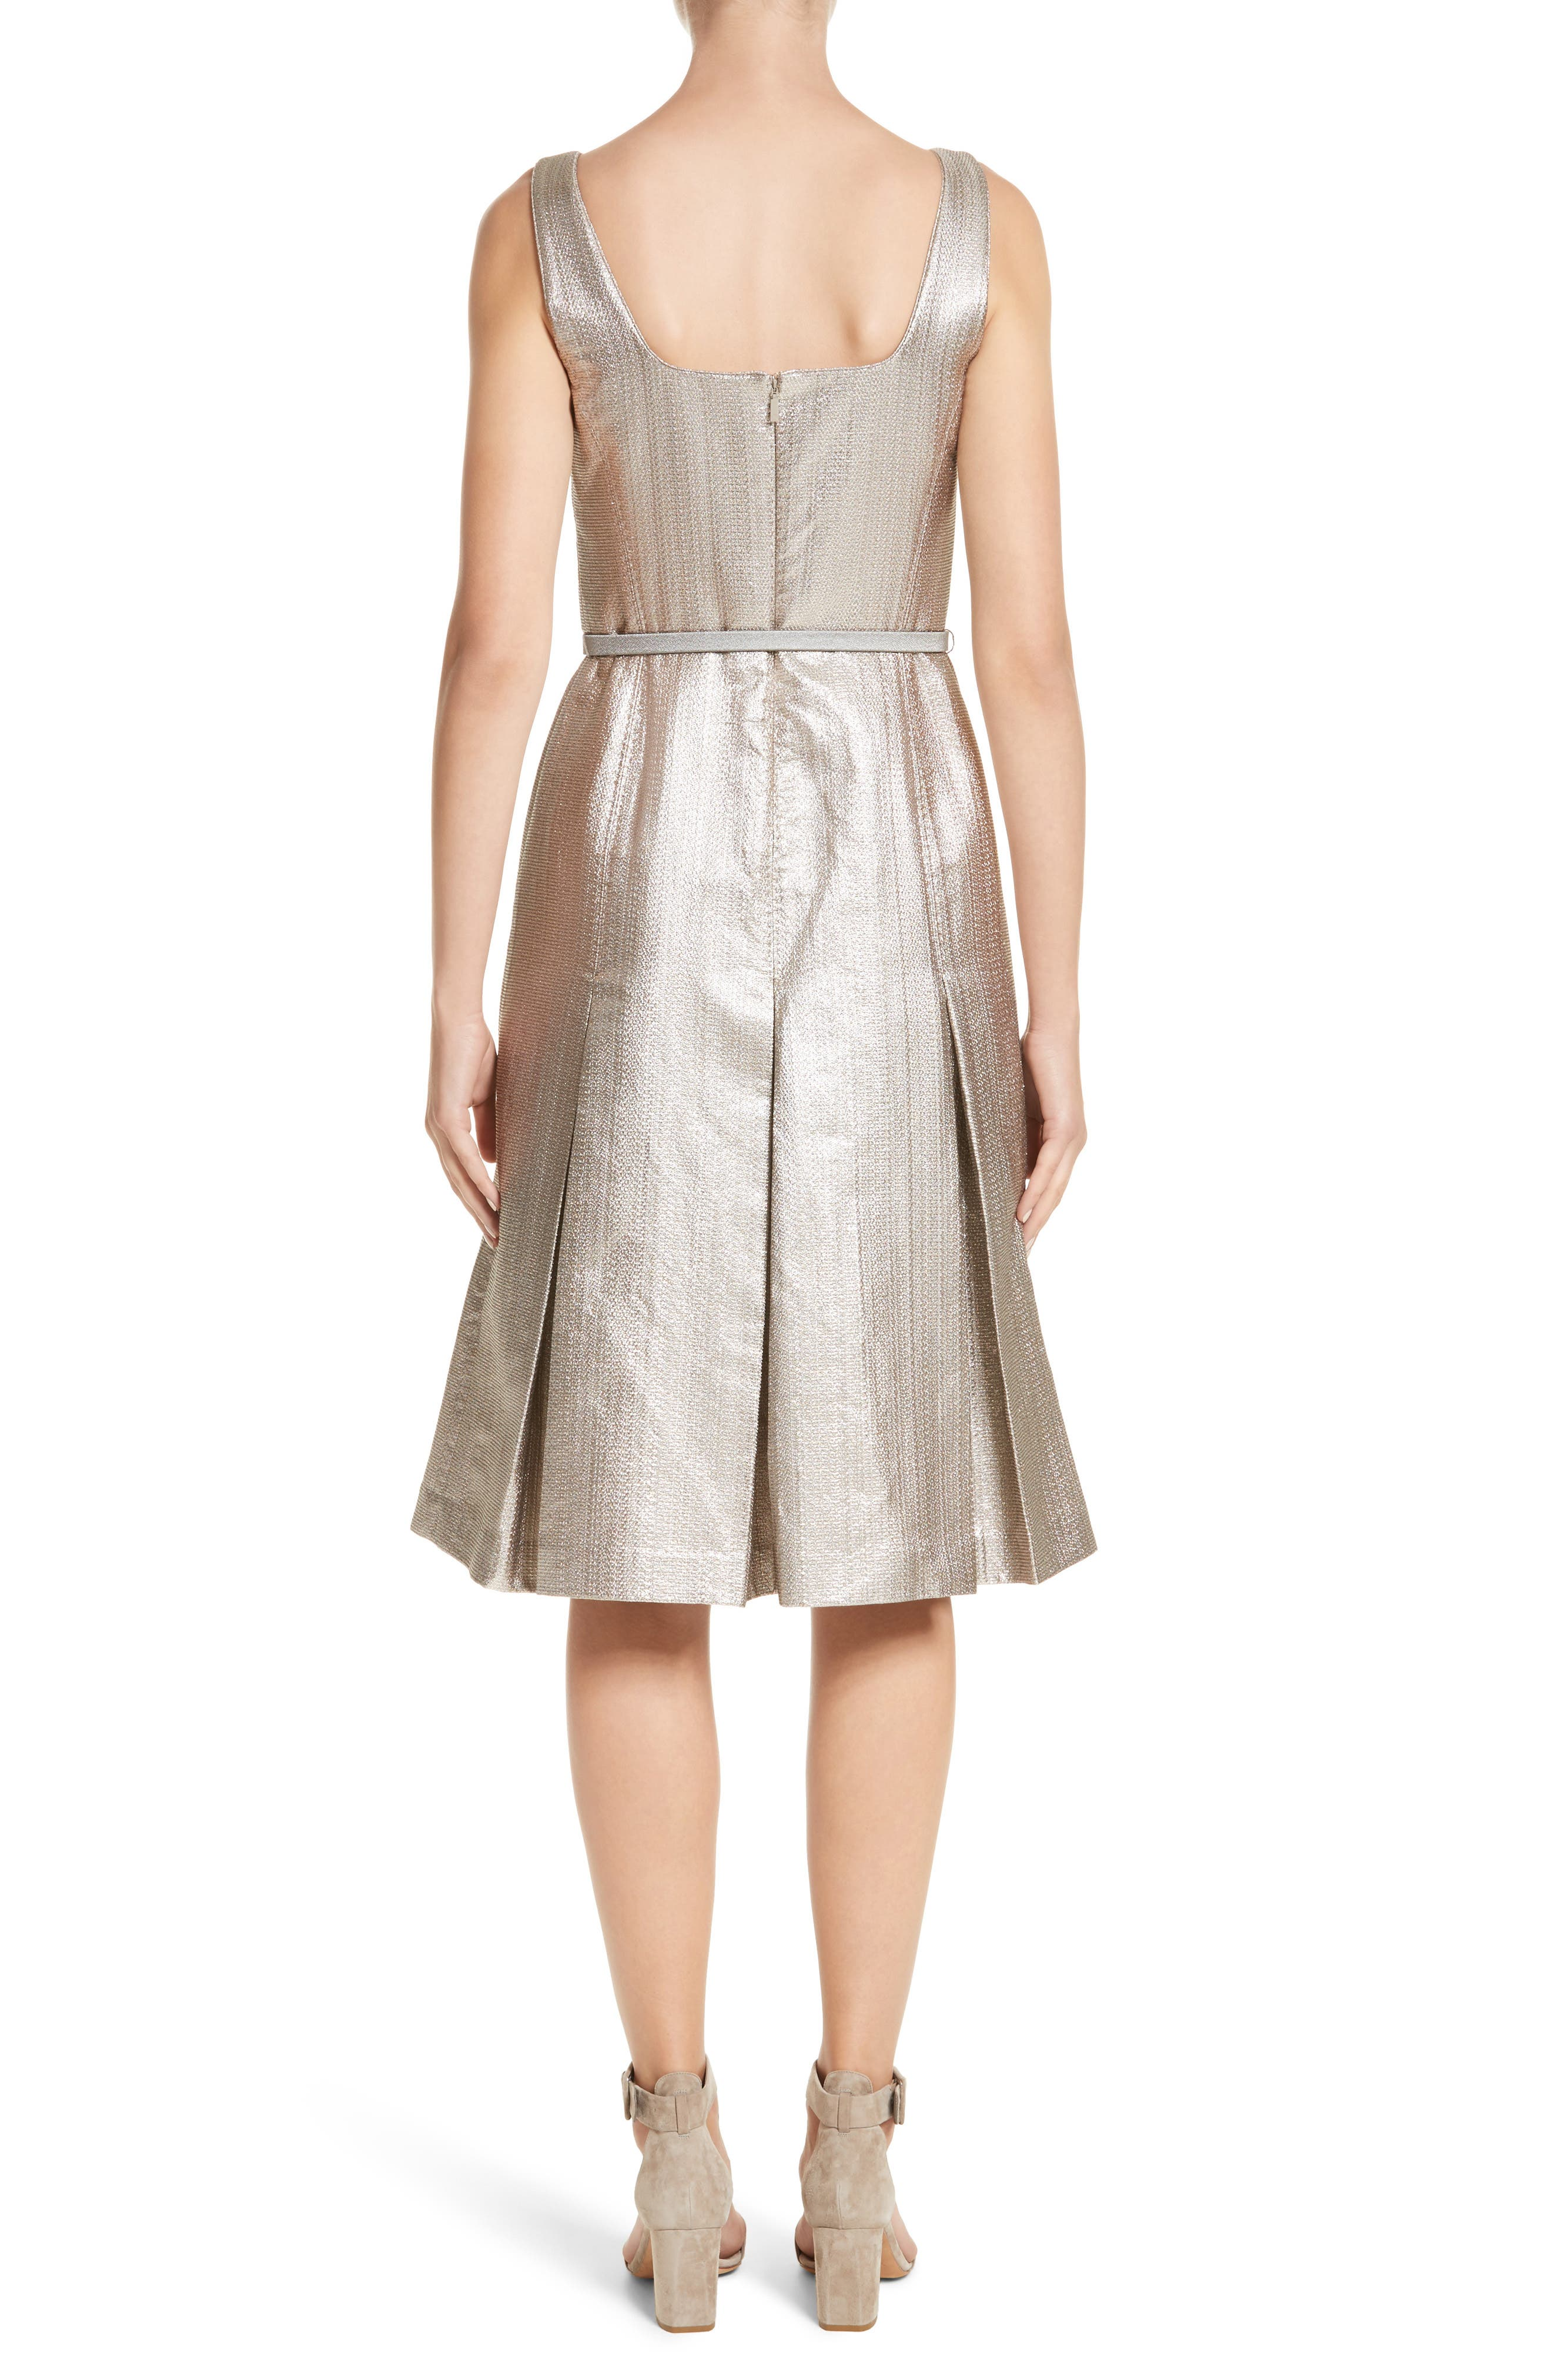 Lois Ceremonial Cloth Dress,                             Alternate thumbnail 2, color,                             Oyster Metallic